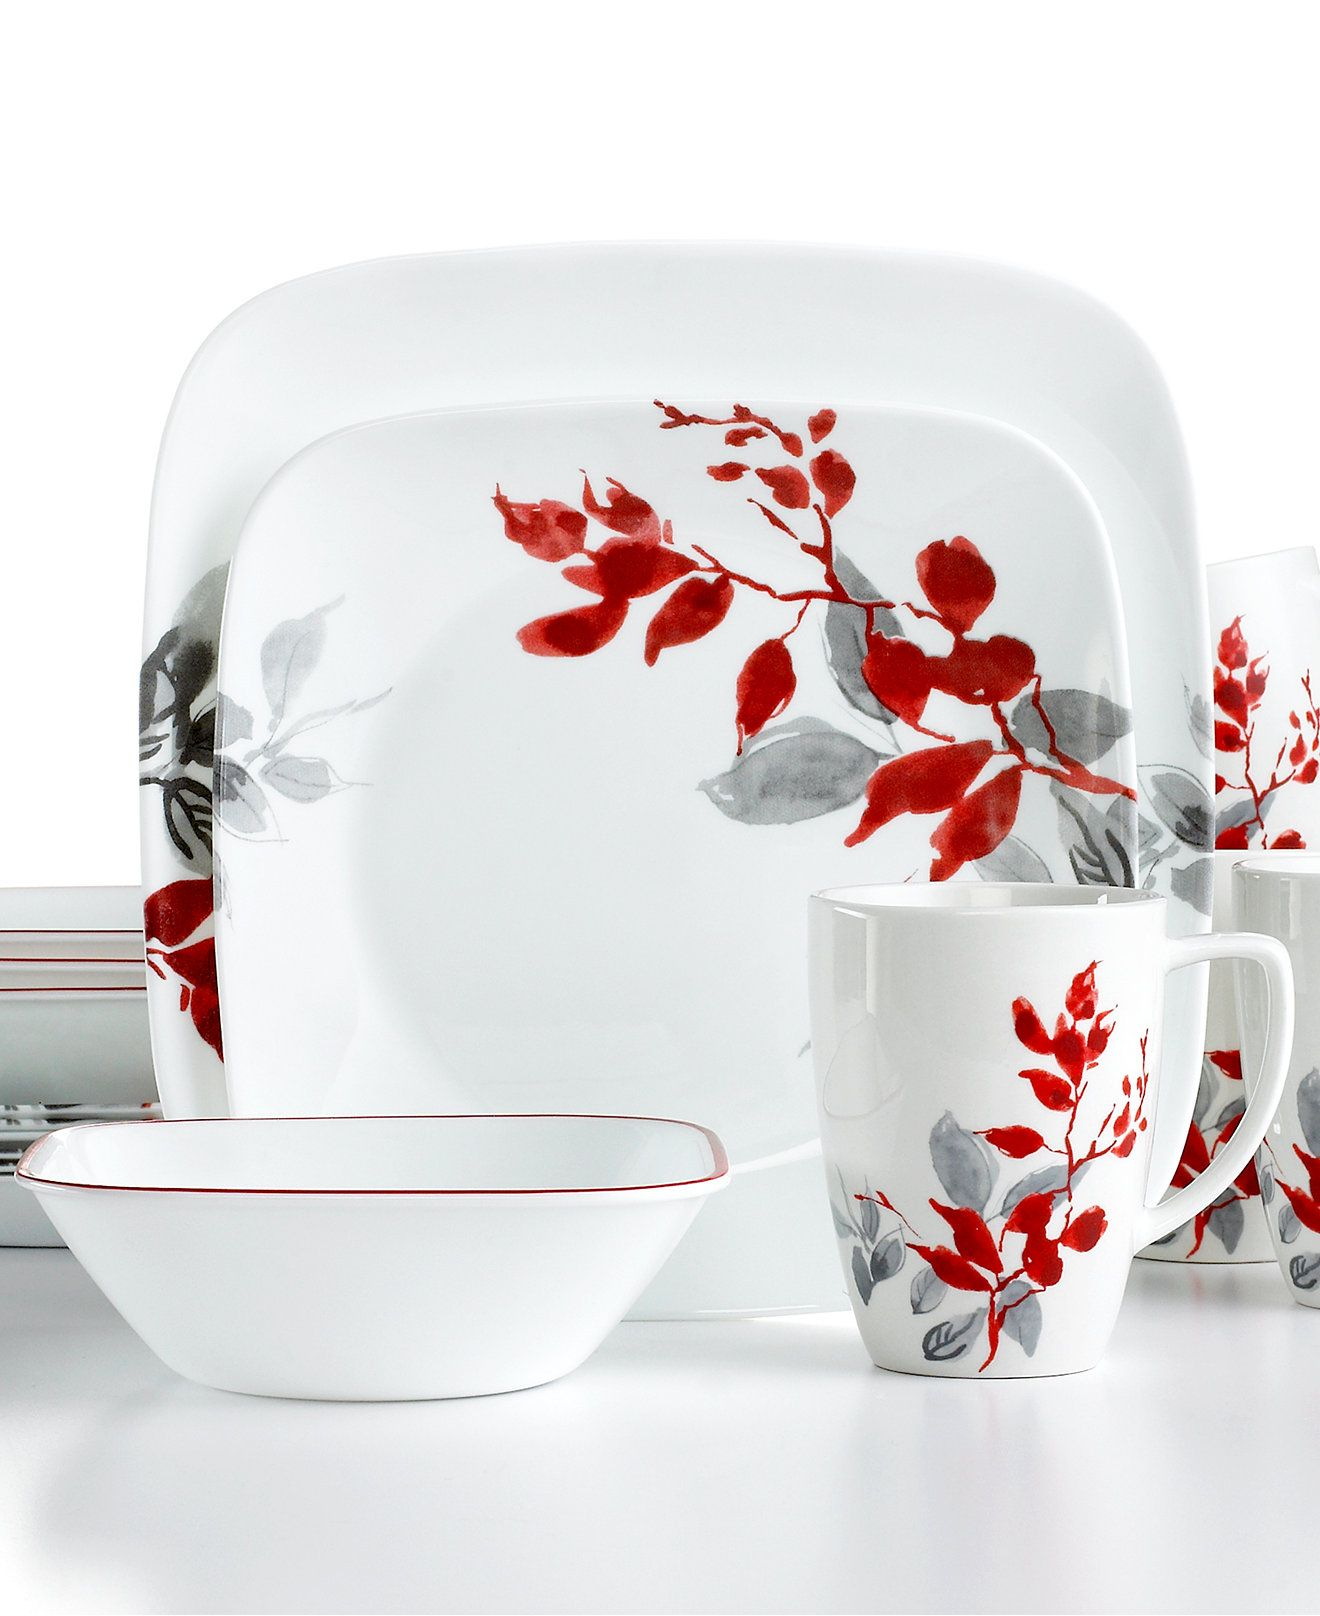 Corelle Kyoto Leaves Square 16-Piece Set - Casual Dining - Kitchen - Macyu0027s SALE $79.99 (reg. $115)  sc 1 st  Pinterest & Kyoto Leaves Square 16-Pc. Set Service for 4 | Pinterest | Casual ...